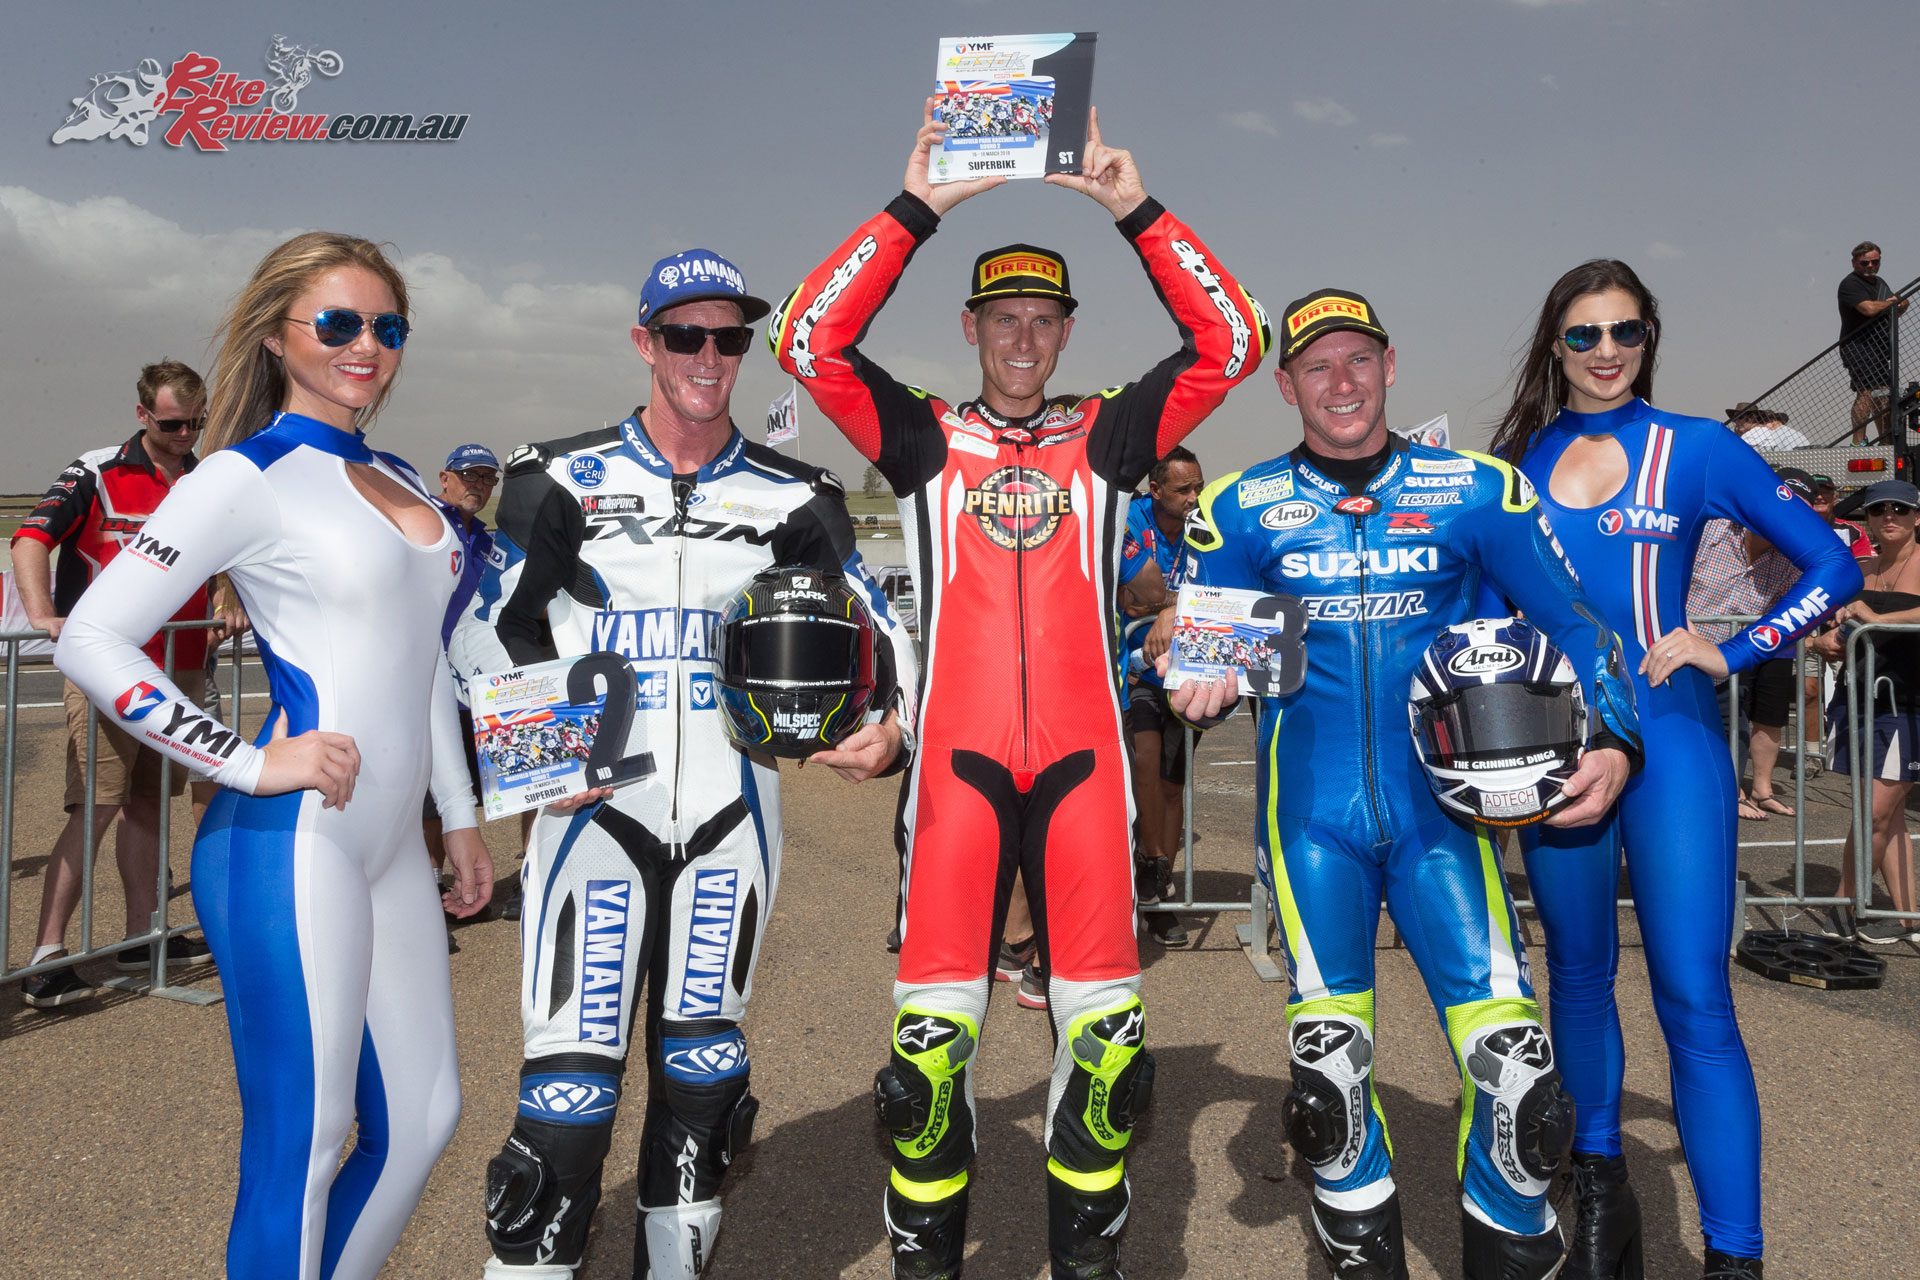 ASBK Round 2 Wakefield Park - Overall Round Podium - Maxwell (2), Herfoss (1), Waters (3) - Image by TBG Sport